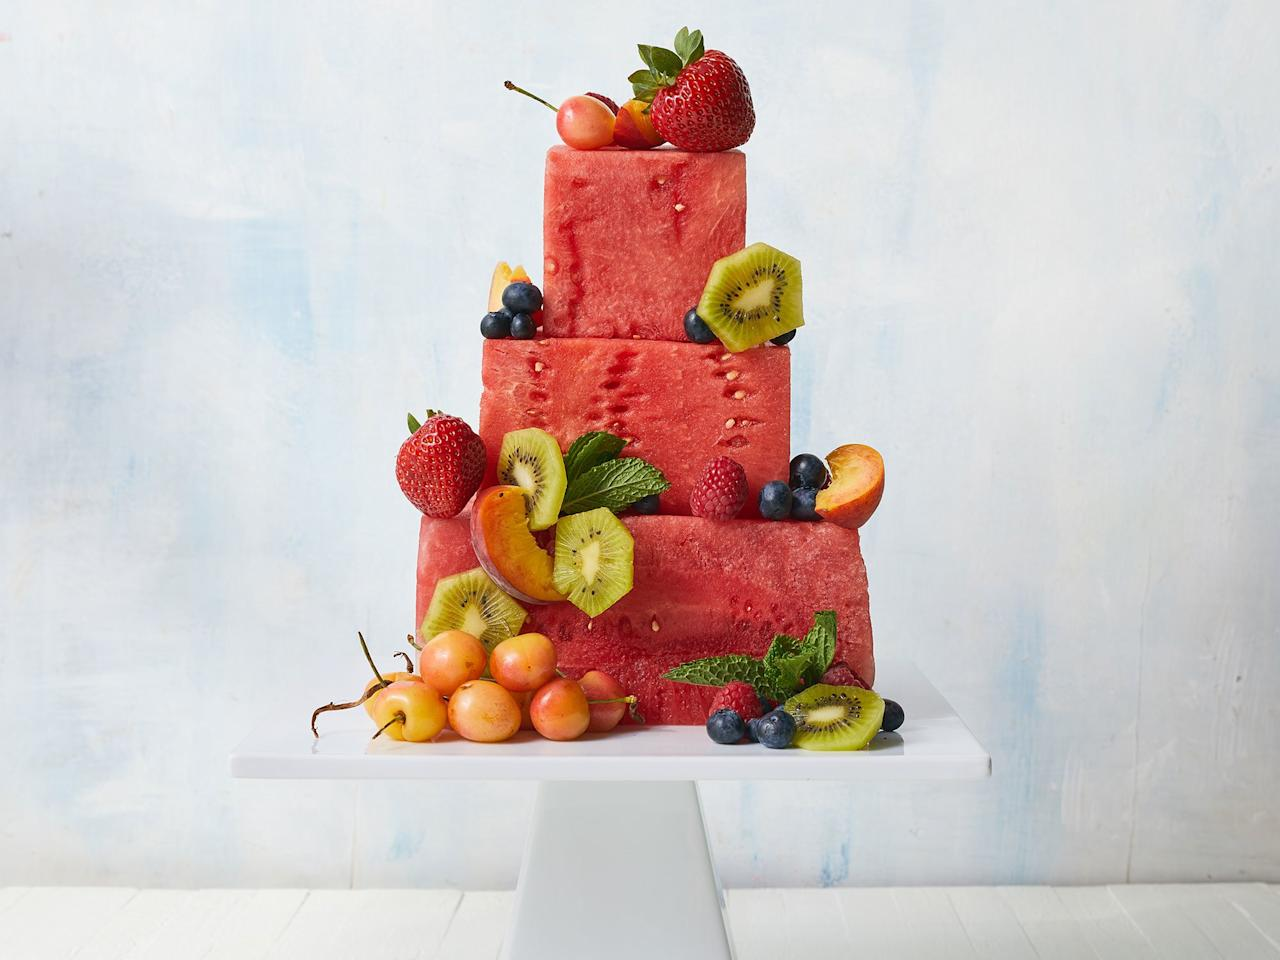 """<p>These towering tiers of summer-ripe fruit will make a stunning centerpiece for your next cookout, potluck, or shower. Use your favorite fruits to customize the design; simply secure firmly with wooden picks.</p> <p>Although it's tempting to try and make this ahead of time, don't make it any earlier than 4 hours before you plan to serve it; the cut watermelon will get too juicy. We've offered sample sizes for the tiers in the recipe below; feel free to use them as a guide and scale the tiers up or down depending on the size of your watermelons.</p> <p> <a href=""""https://www.cookinglight.com/recipes/watermelon-cake"""">View Recipe: Watermelon Cake</a></p>"""